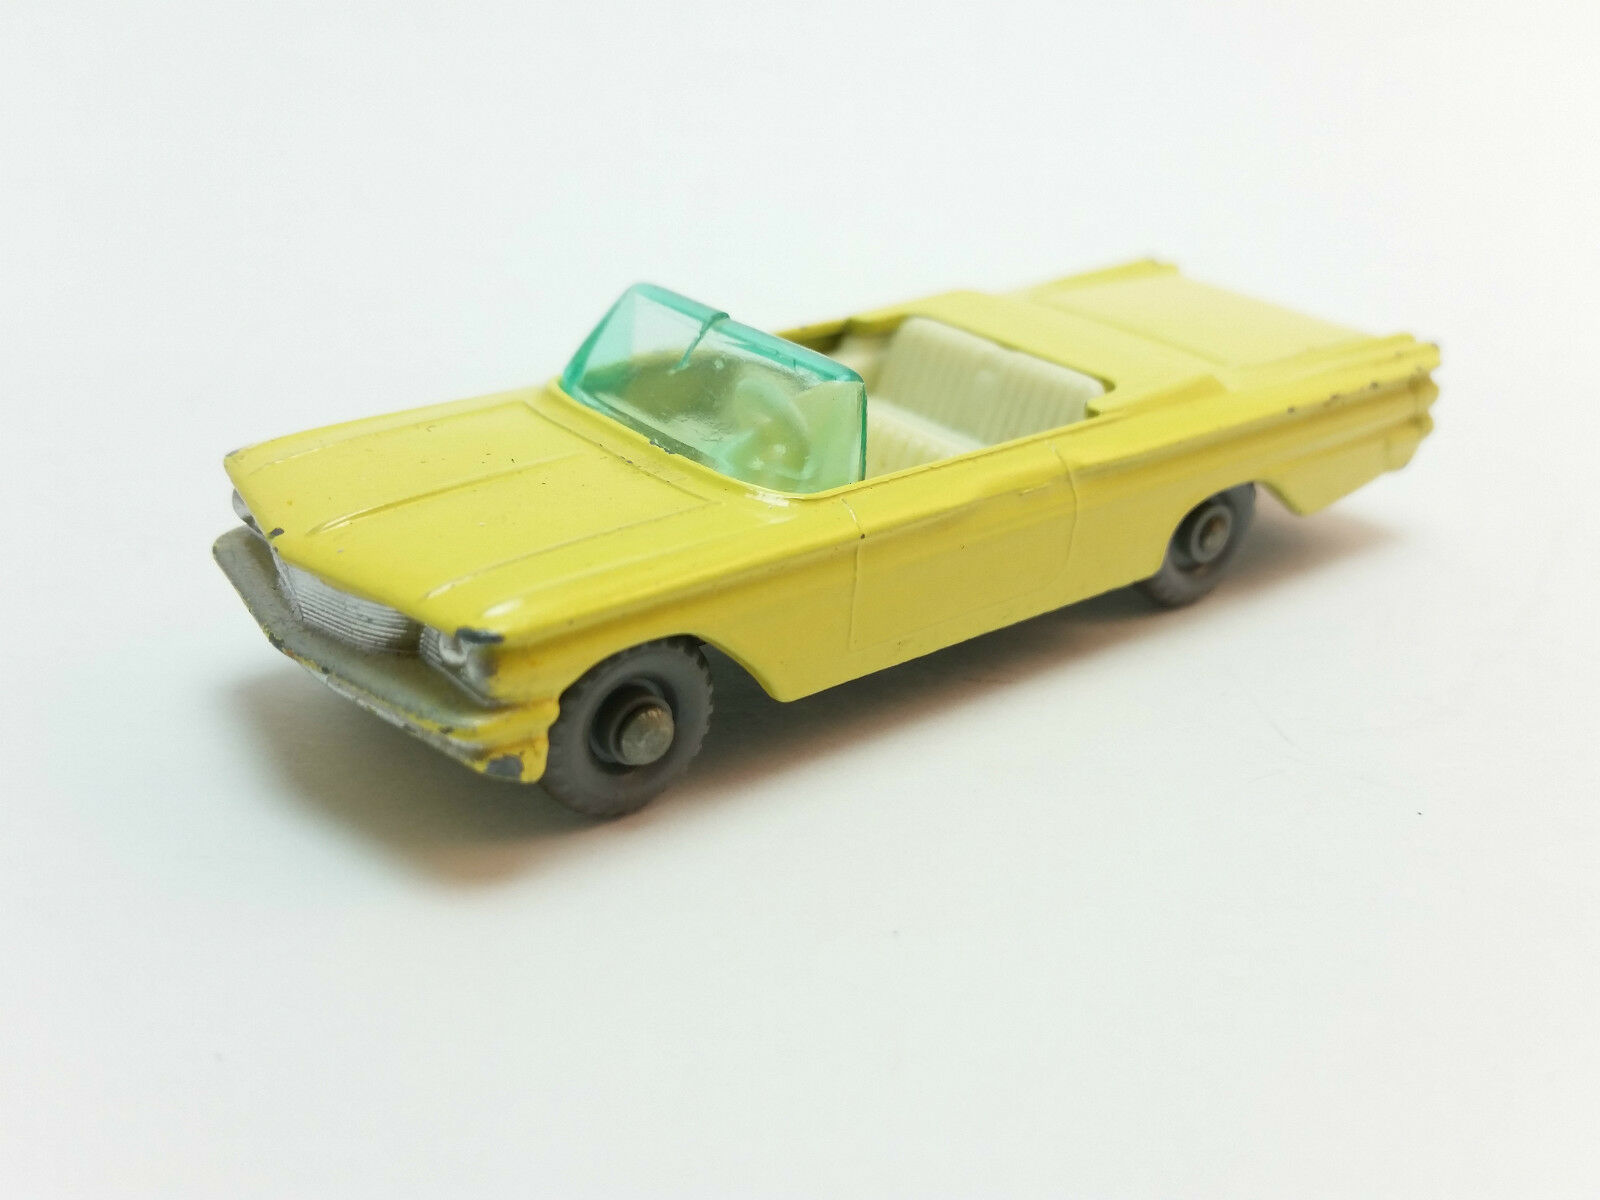 Moko Lesney Matchbox 1-75 Series 39 jaune Pontiac Convertible GPW Near Mint